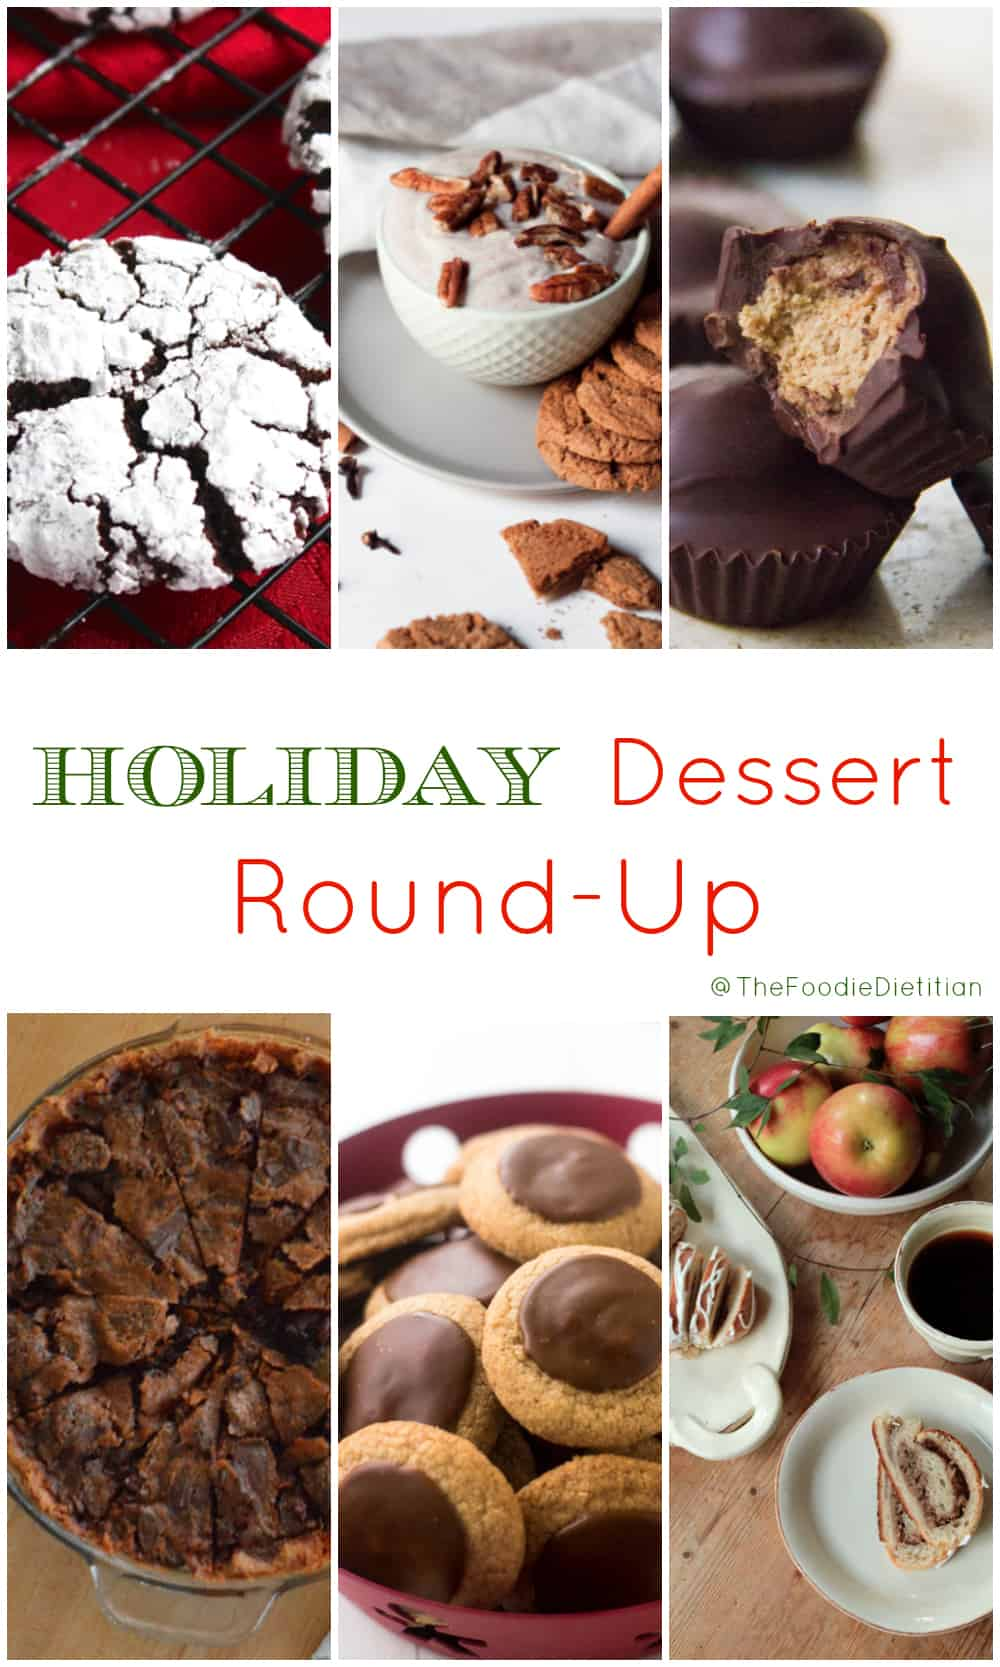 Tis the season for a holiday dessert recipe round-up! All of my favorite healthier dessert recipes for the holidays along with other friday favorites. | @TheFoodieDietitian